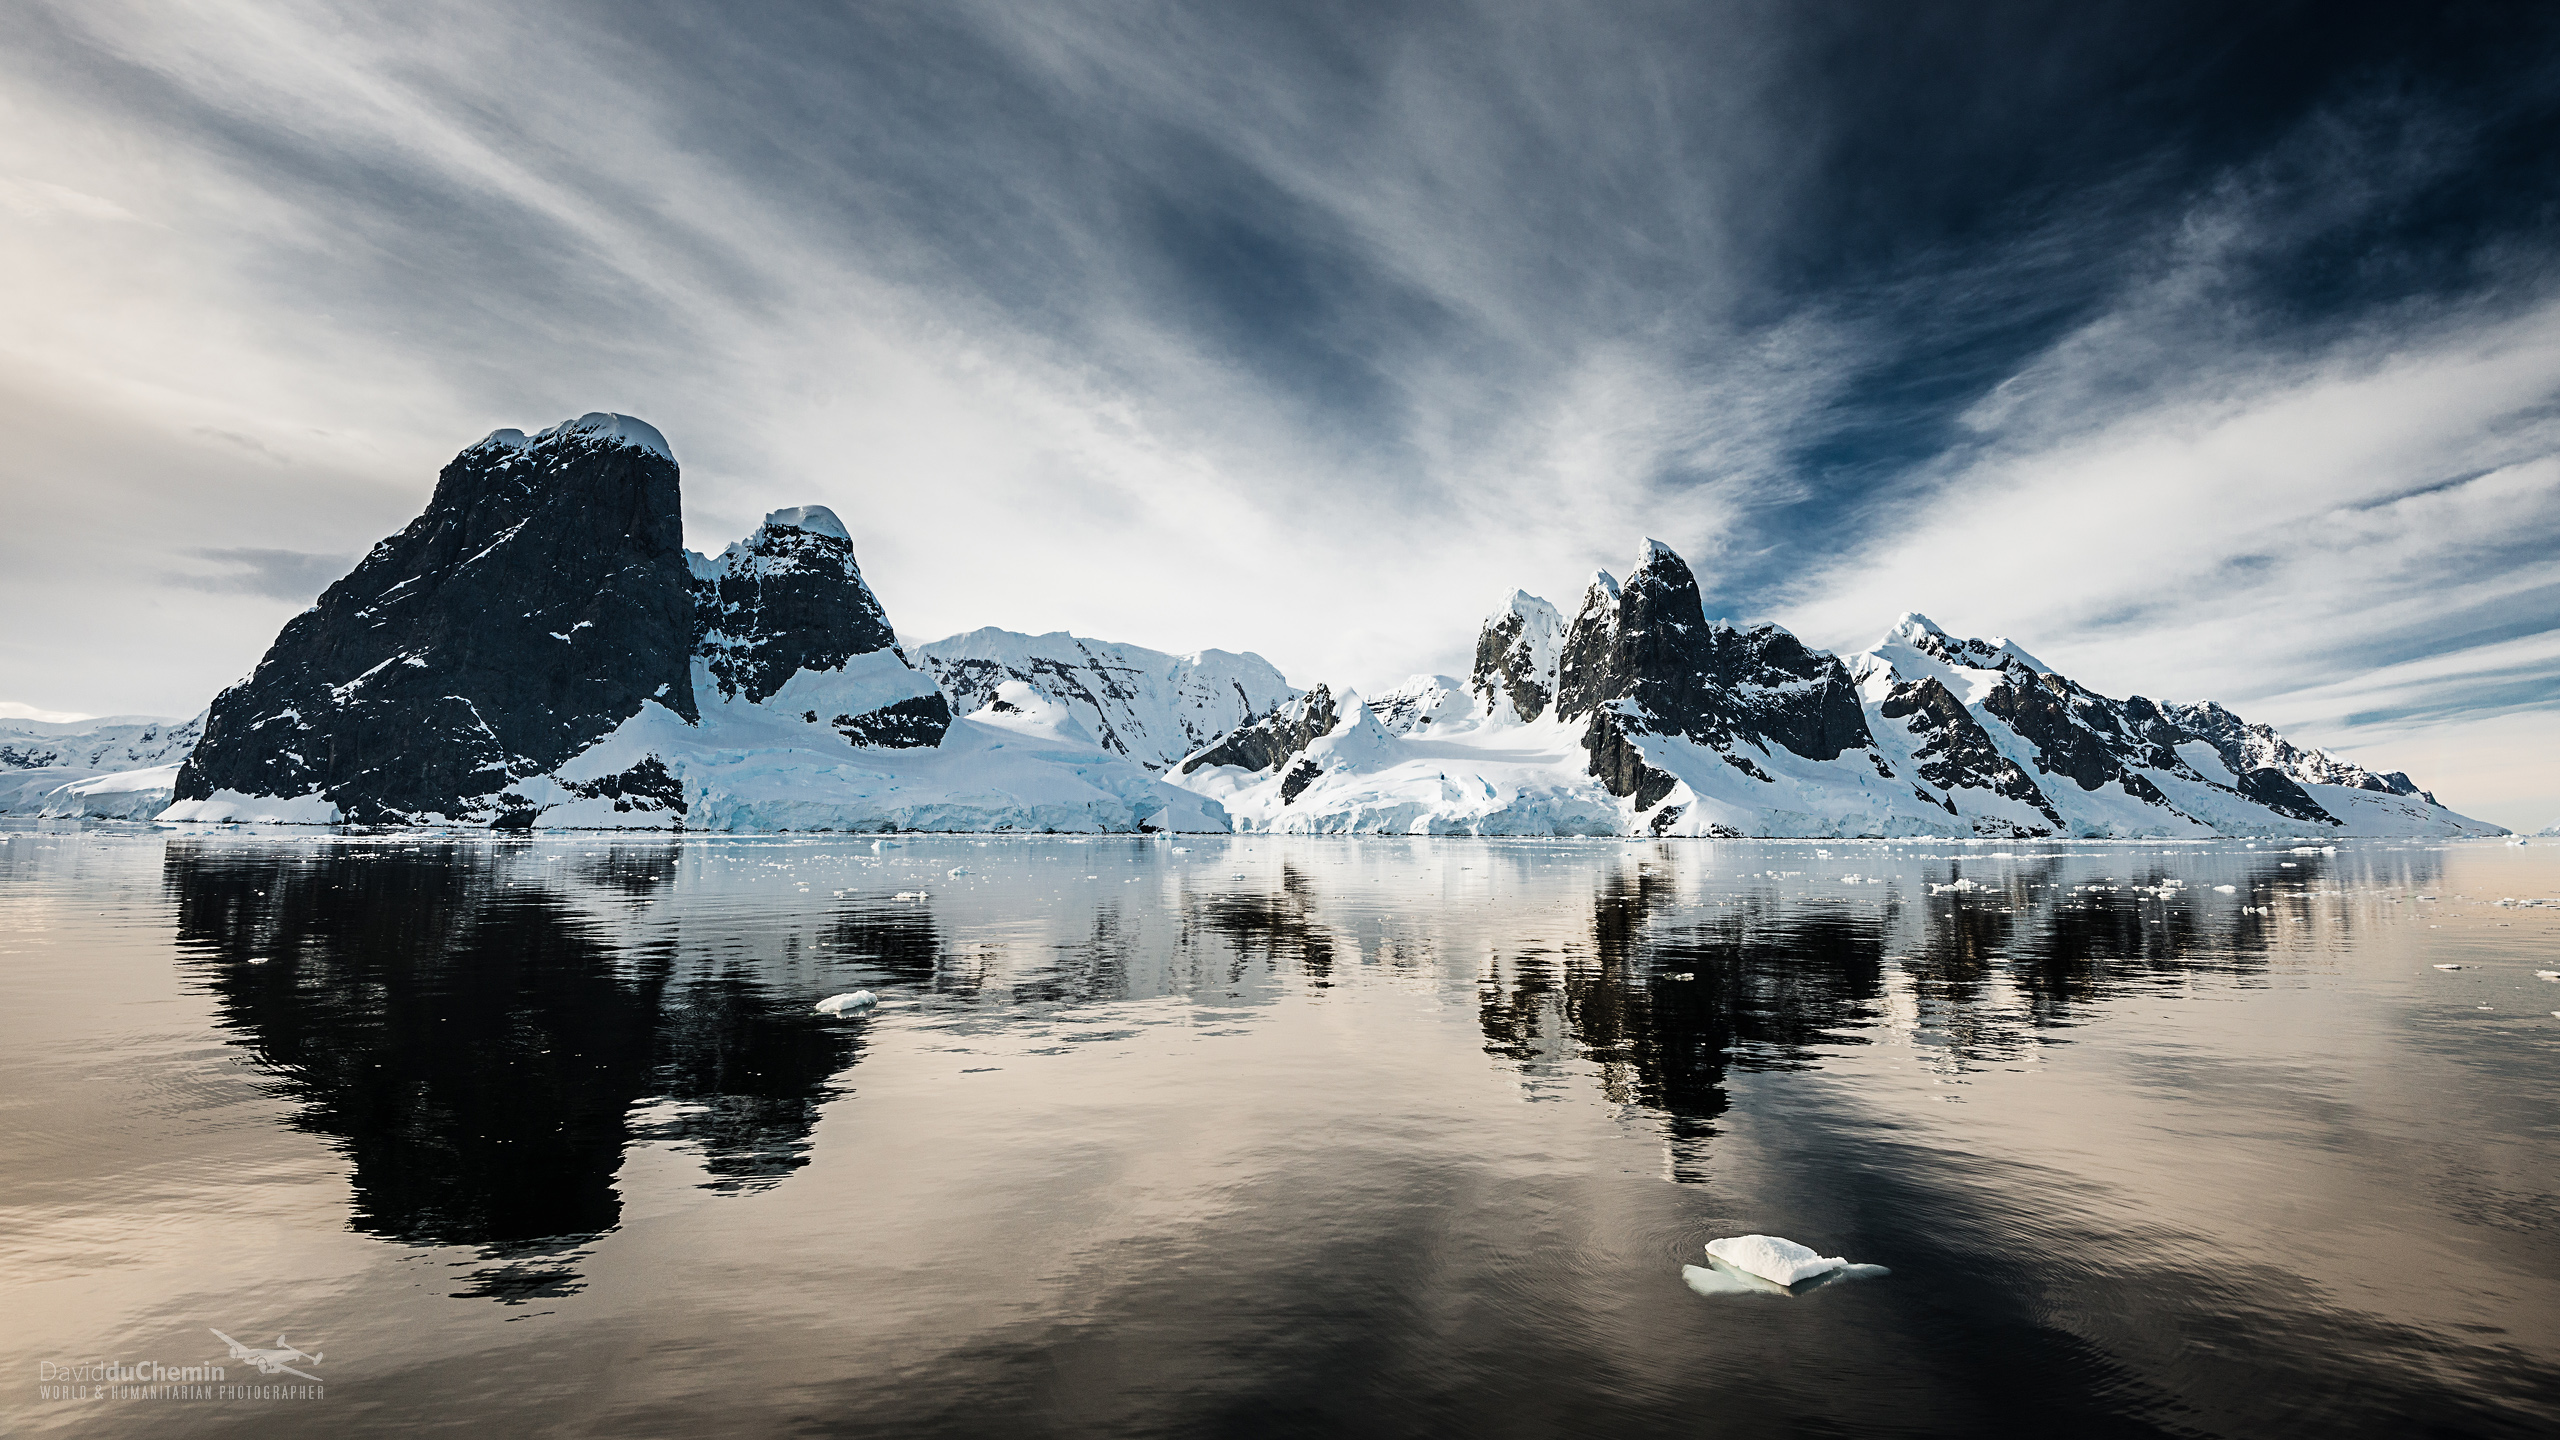 Antarctica Large Screen Wallpaper   Travel HD Wallpapers 2560x1440